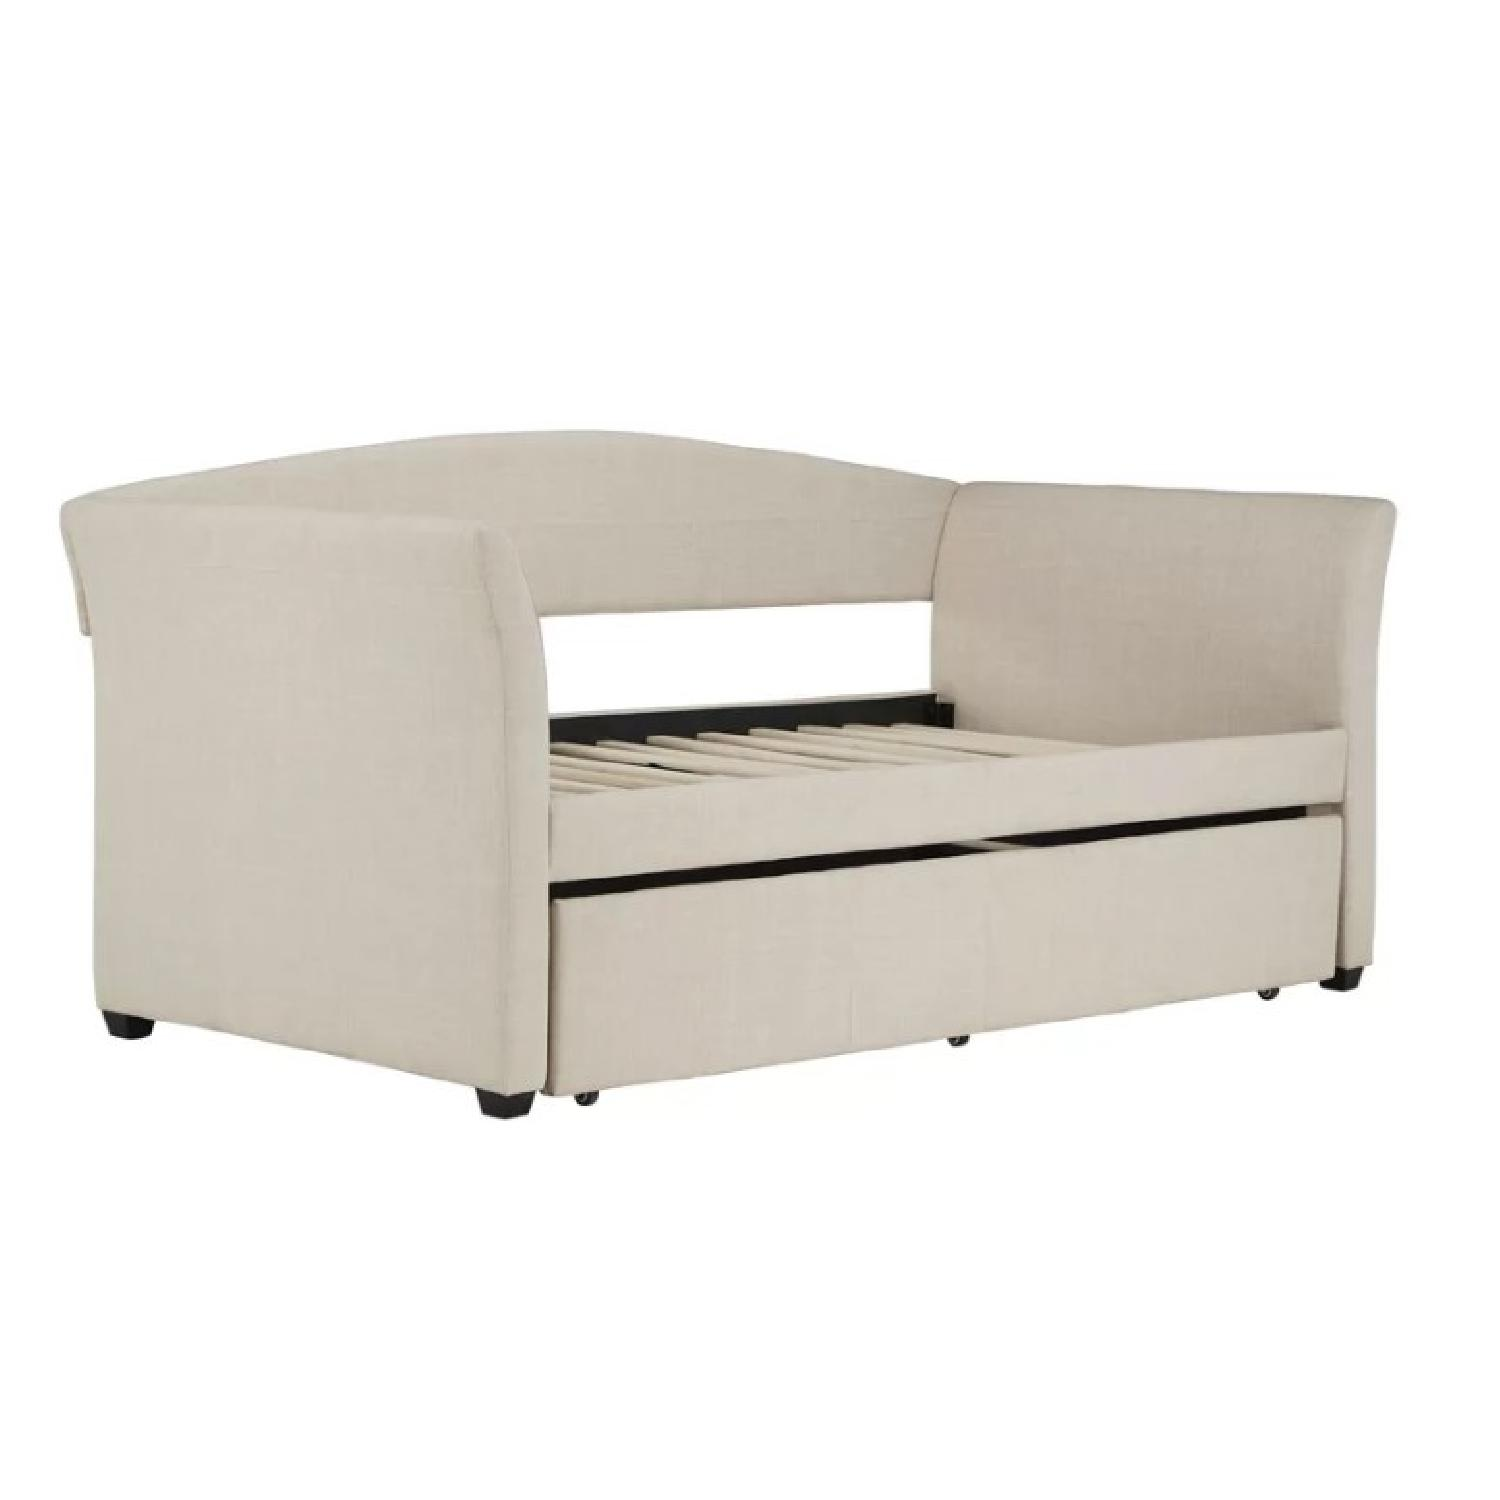 Three Posts Burlington Daybed w/ Trundle